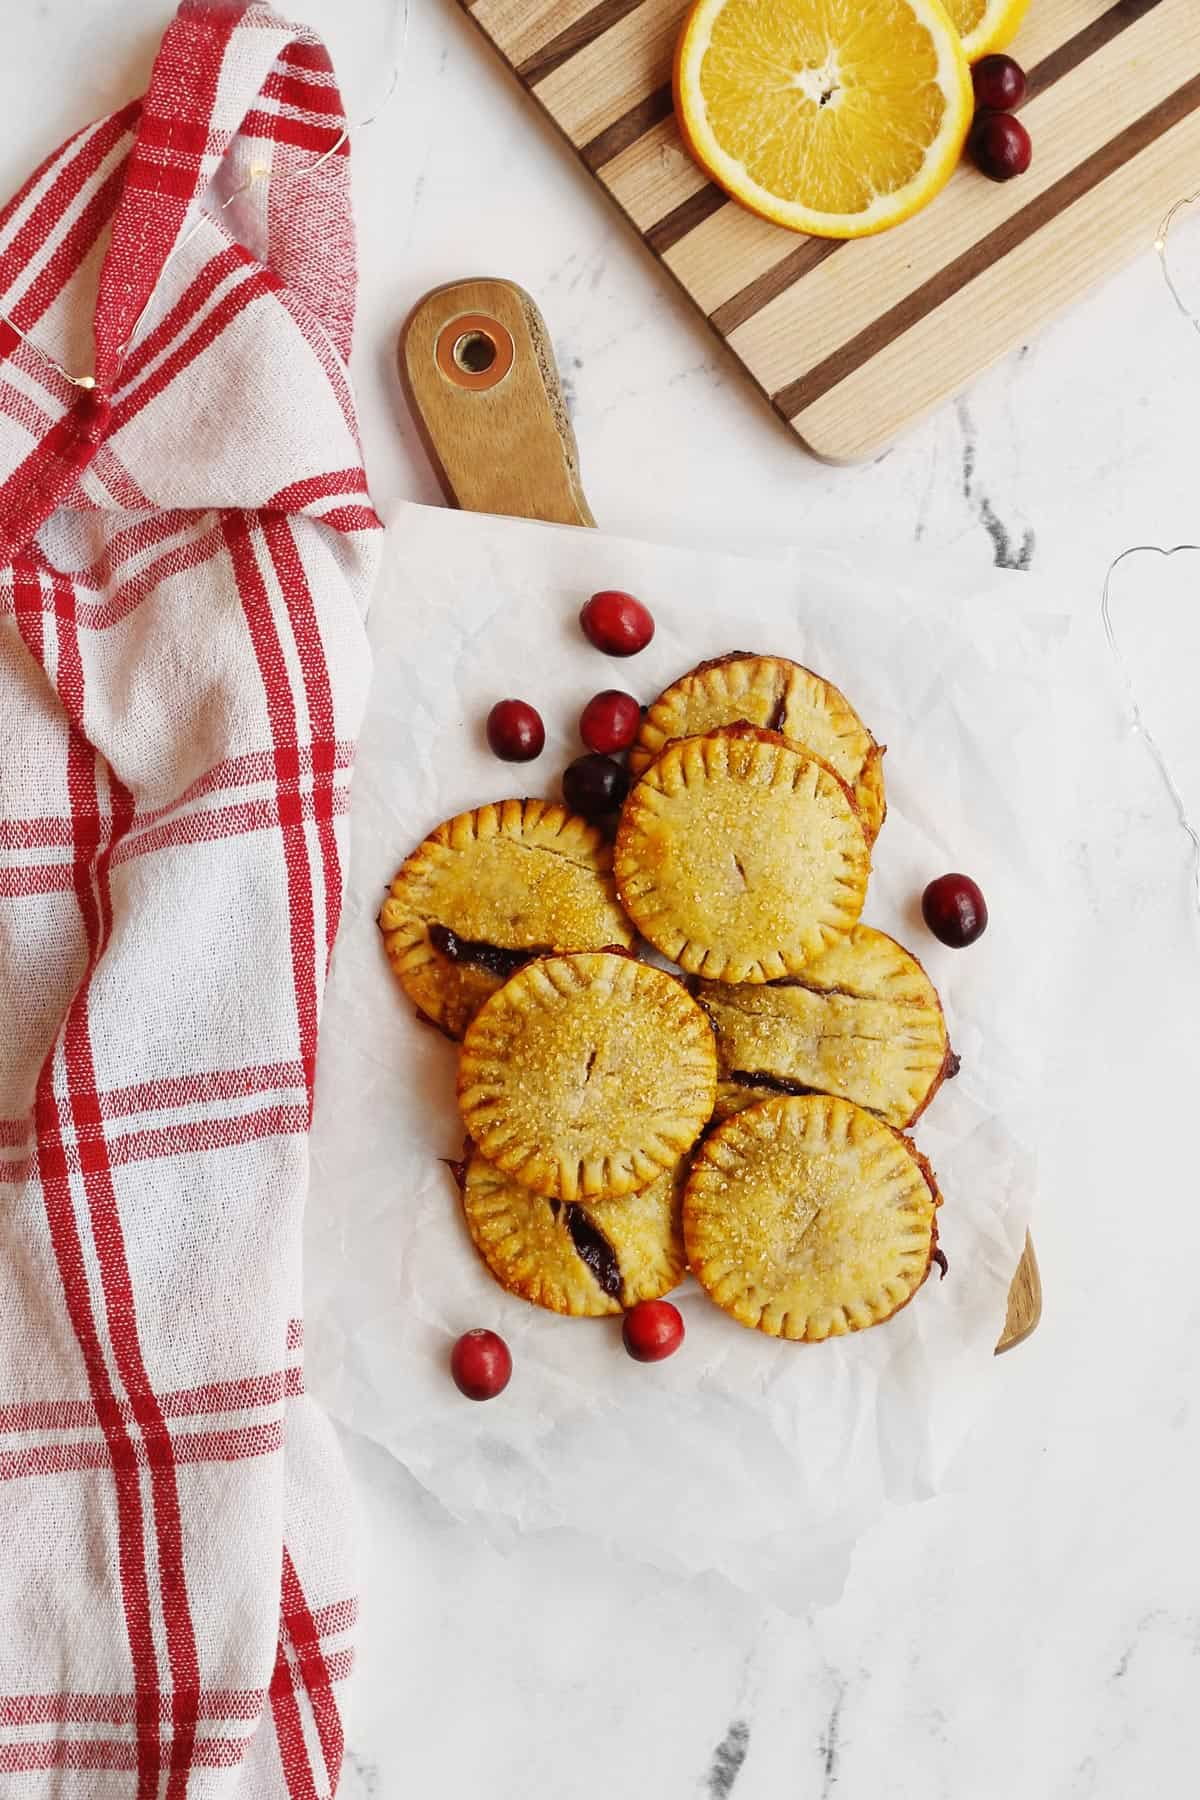 Cranberry hand pies on a cutting board